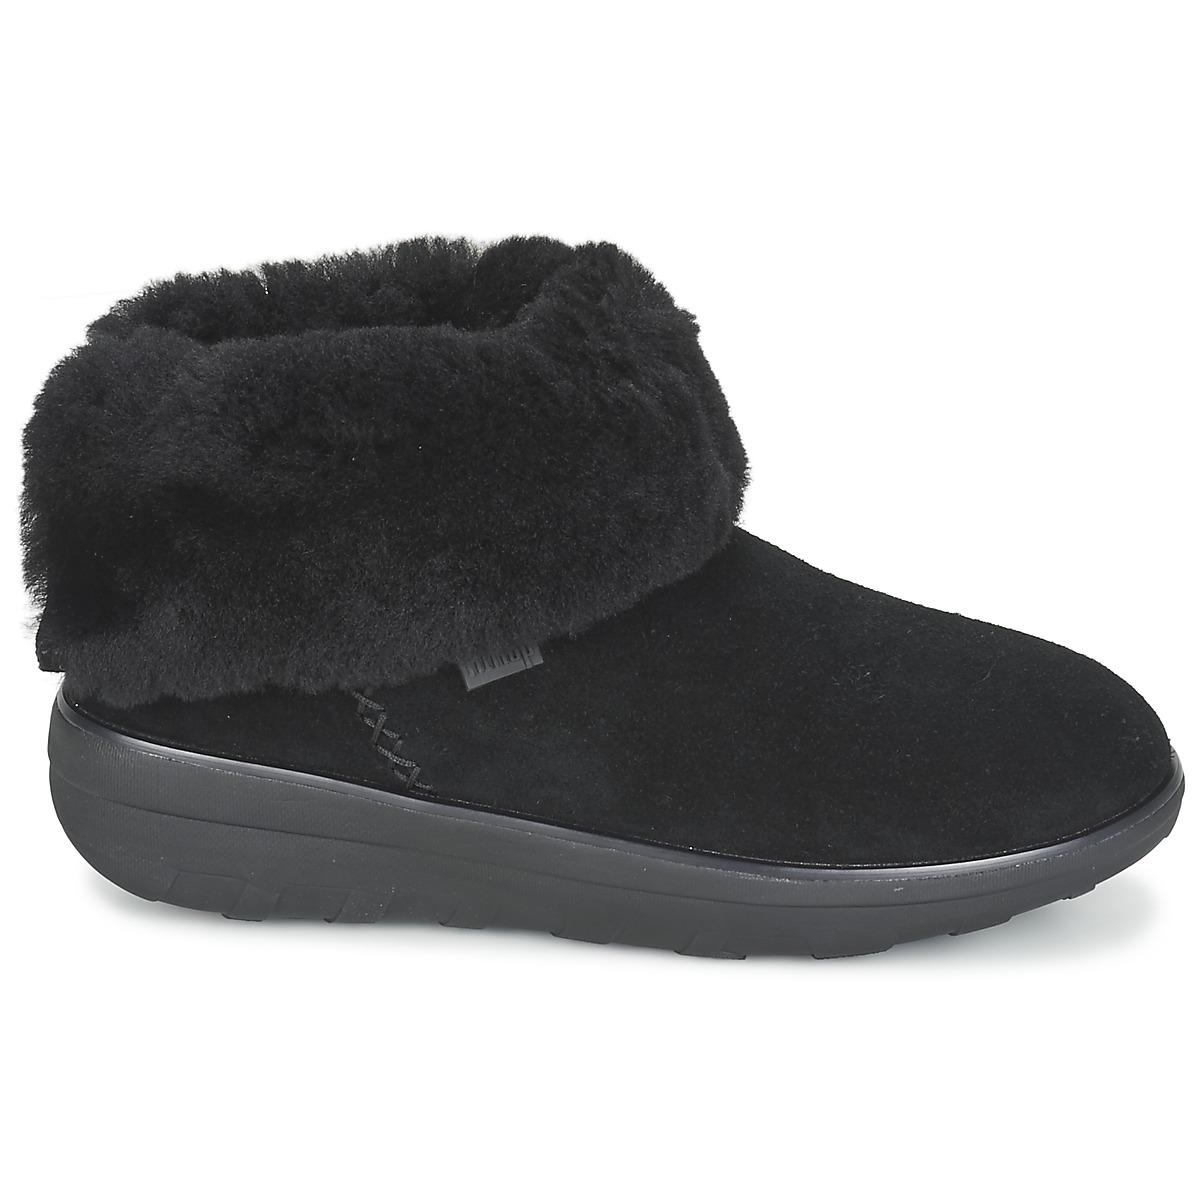 8f2dad40221fac Fitflop - Mukluk Shorty 2 Boots Women s Mid Boots In Black - Lyst. View  fullscreen